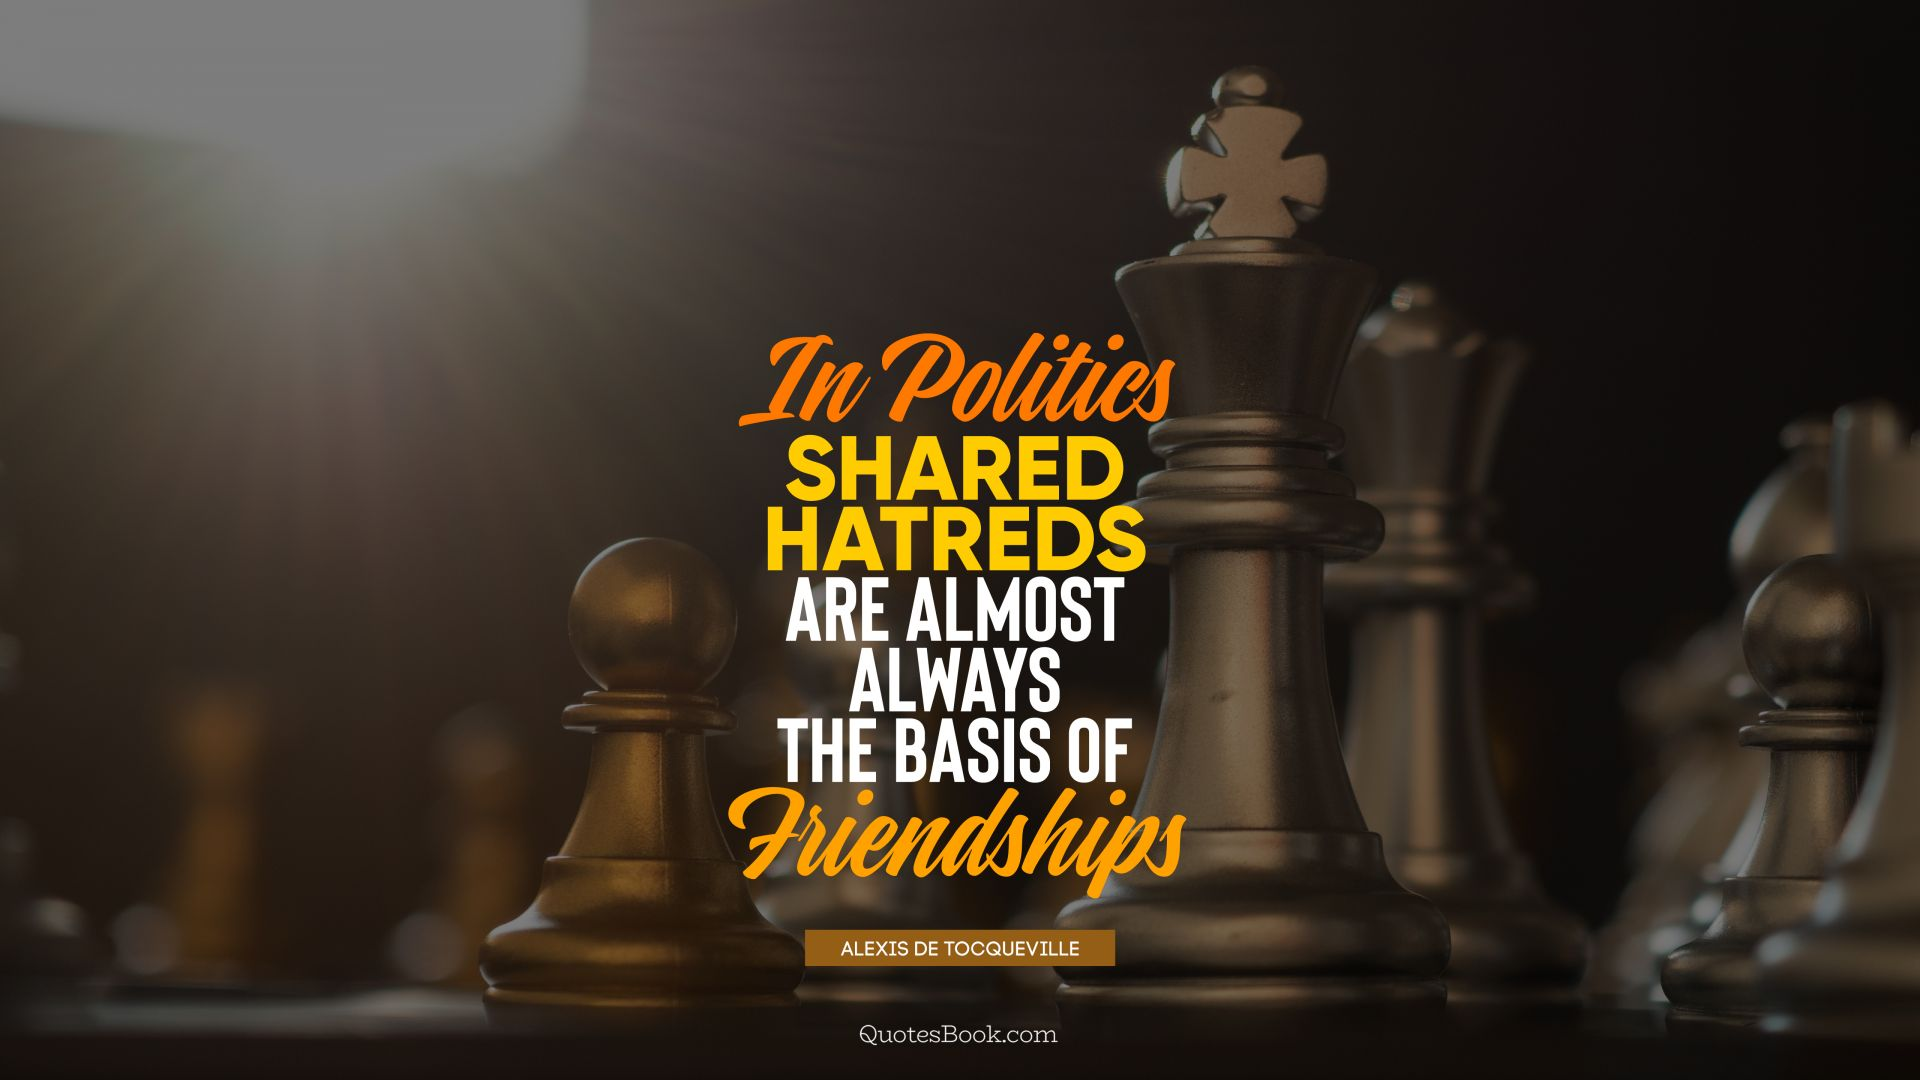 In politics shared hatreds are almost always the basis of friendships. - Quote by Alexis de Tocqueville